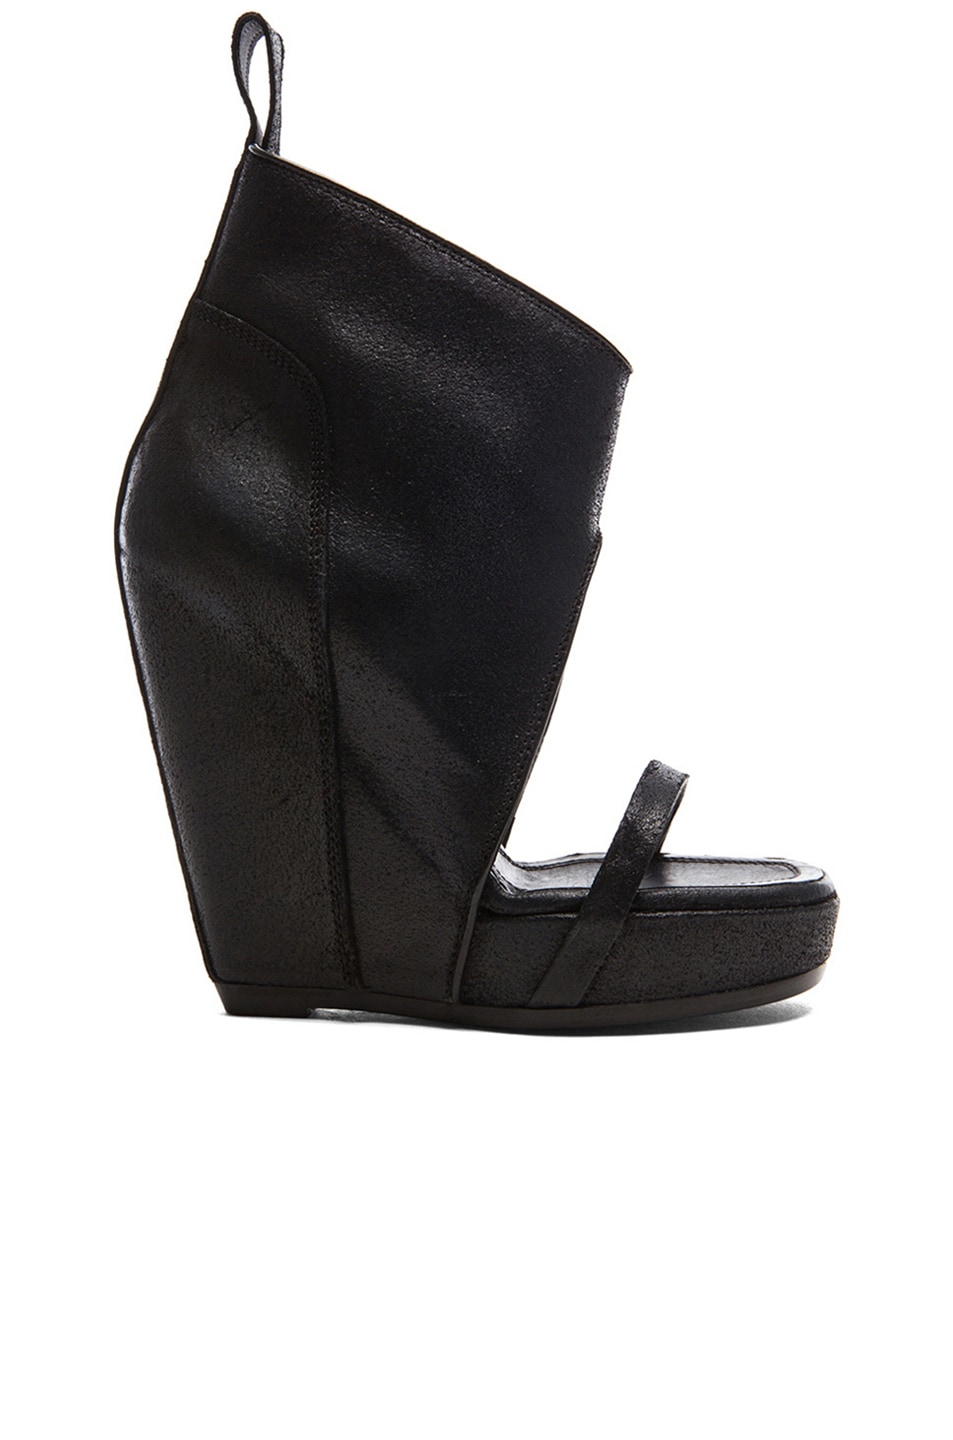 579bb521b8d Image 1 of Rick Owens Distressed Leather Wedge Sandals in Black